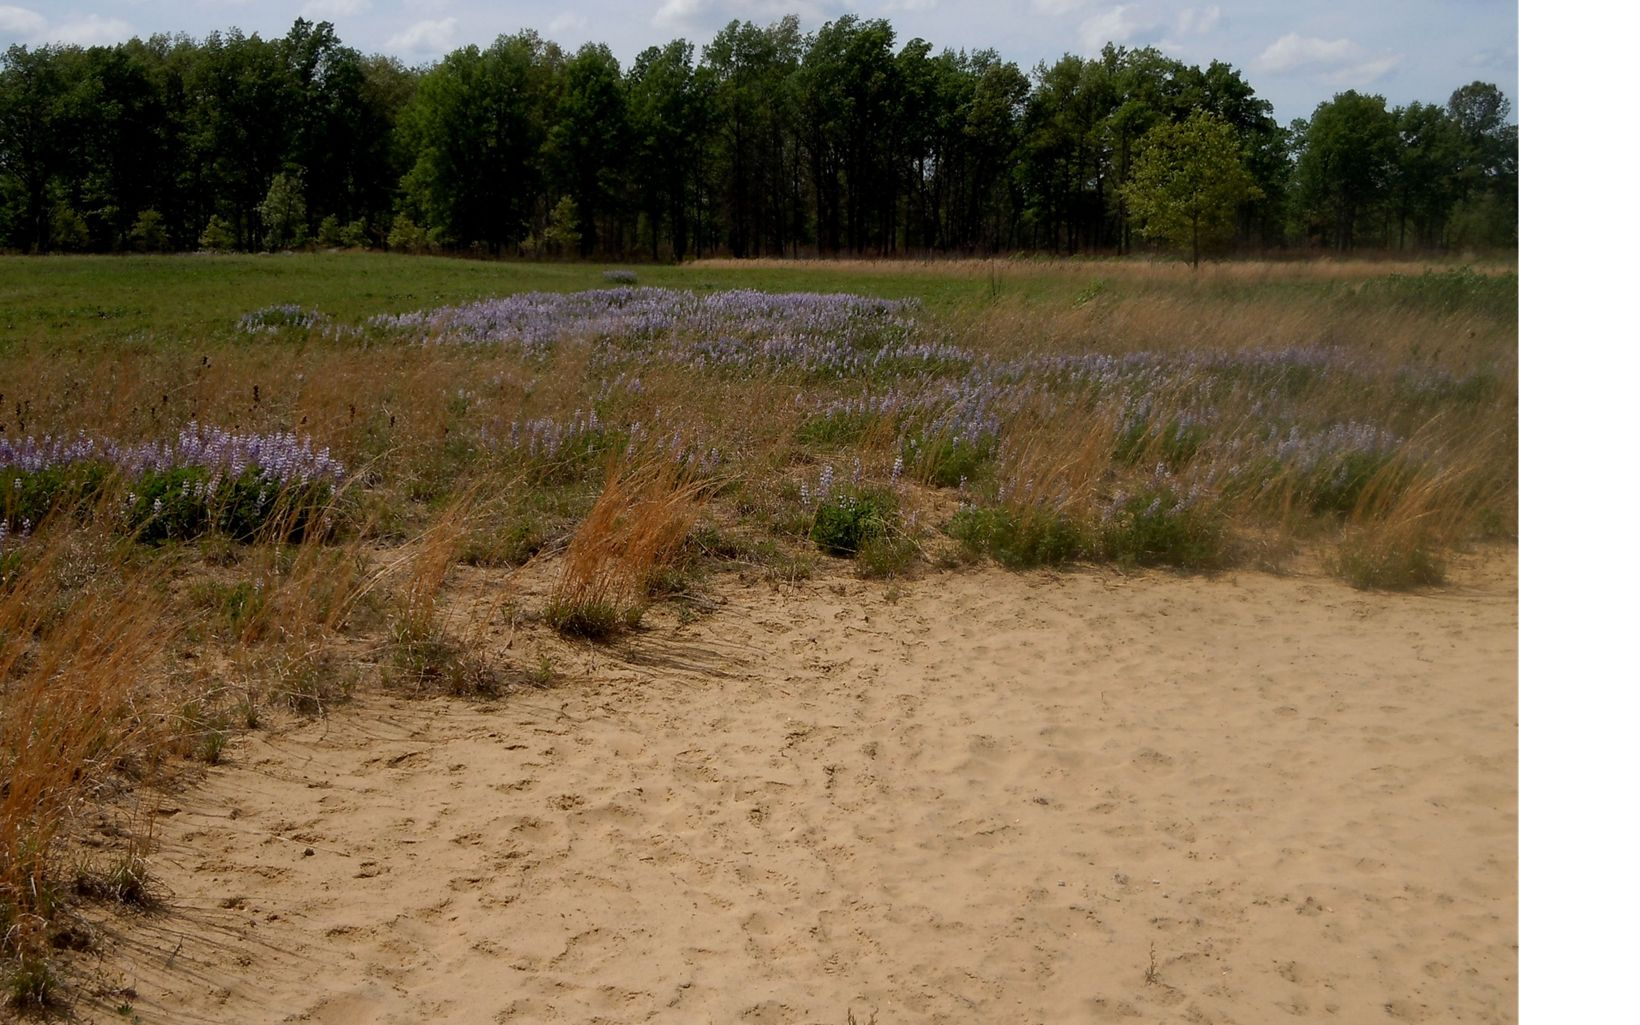 Sandy soils meet prairie where blue lupines bloom.